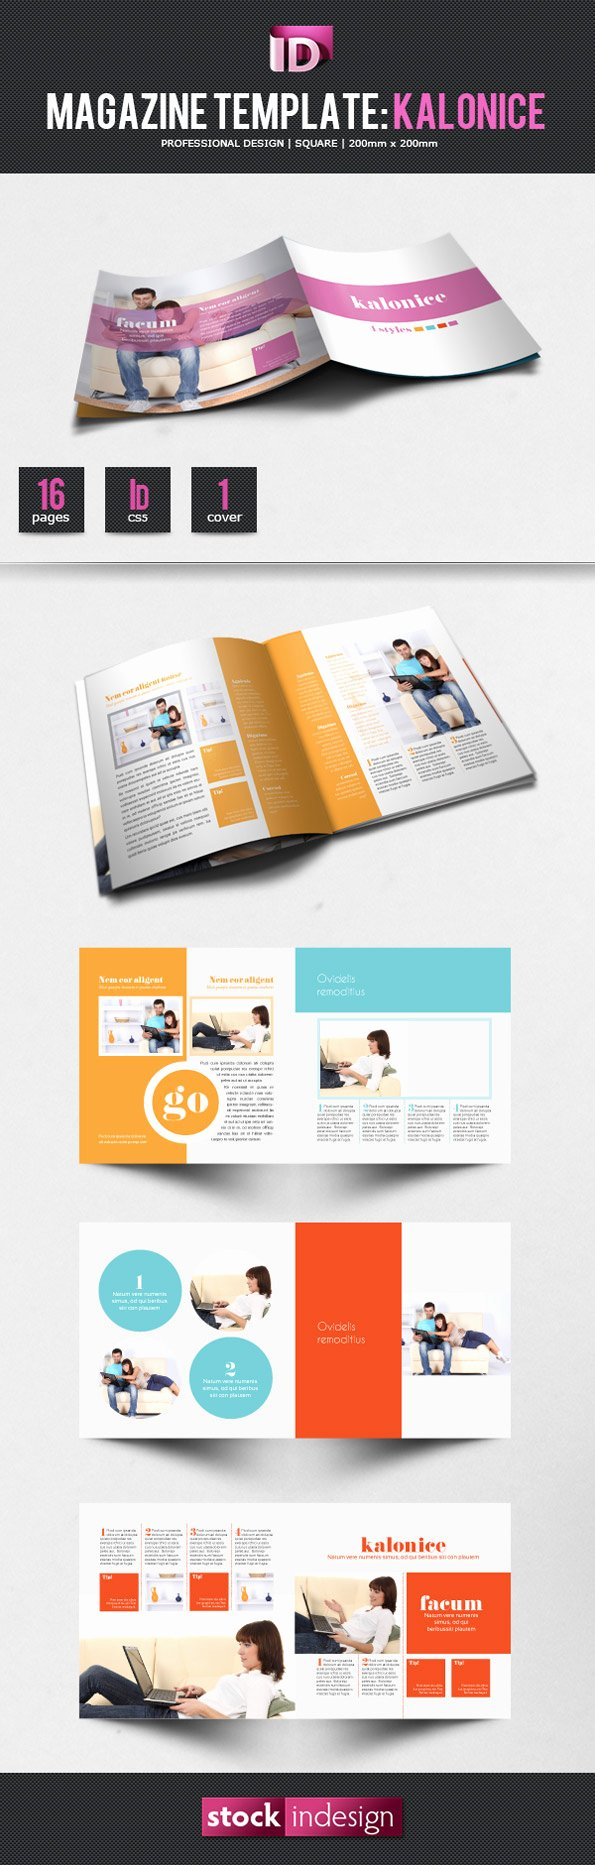 Magazine Layout Template Indesign Inspirational Stockindesign Magazine Template Kalonice Stockindesign